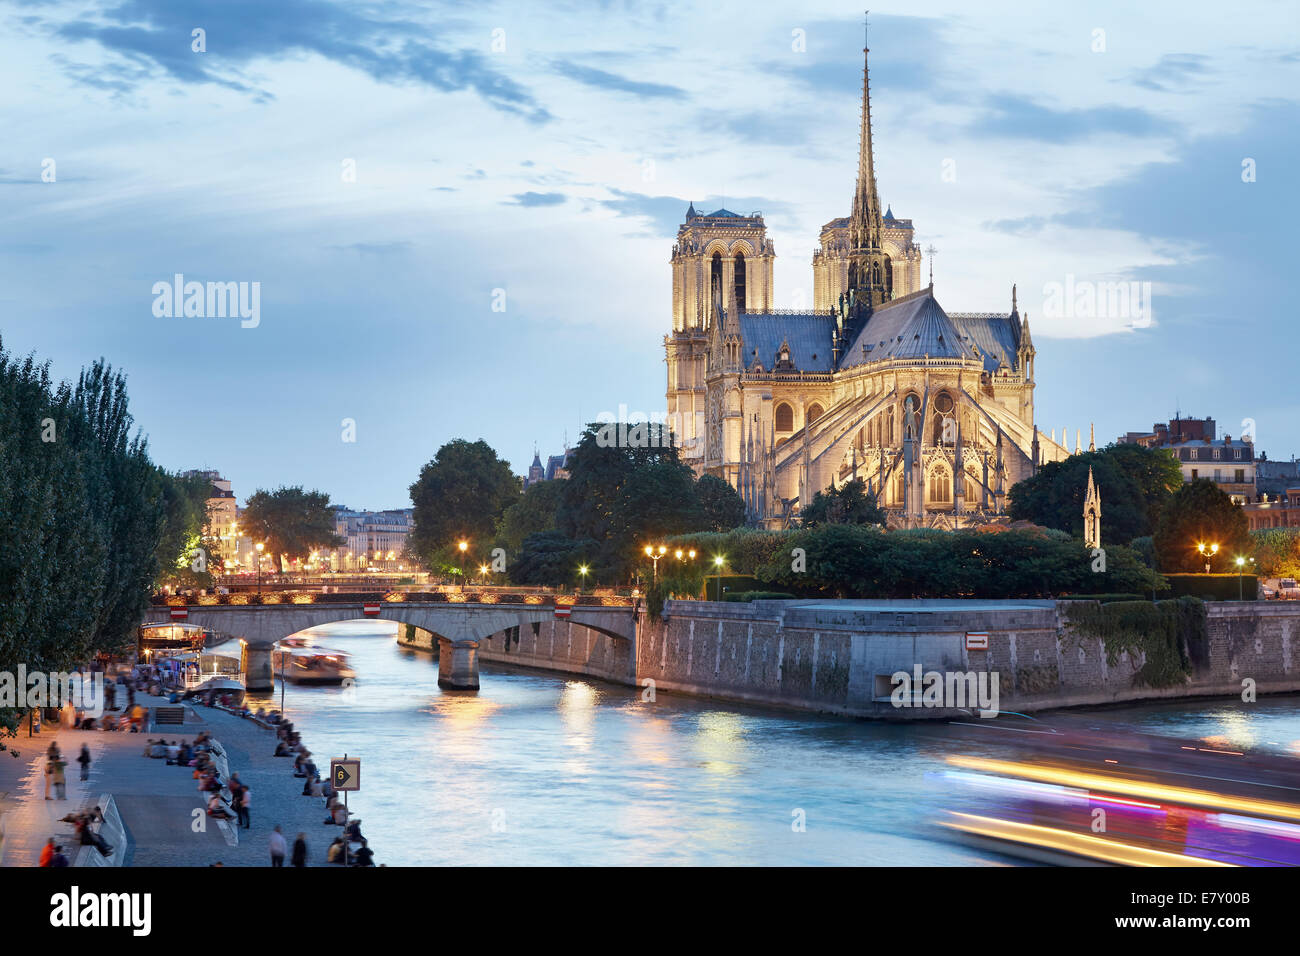 The Cathedral of Notre Dame de Paris in the evening, France Stock Photo